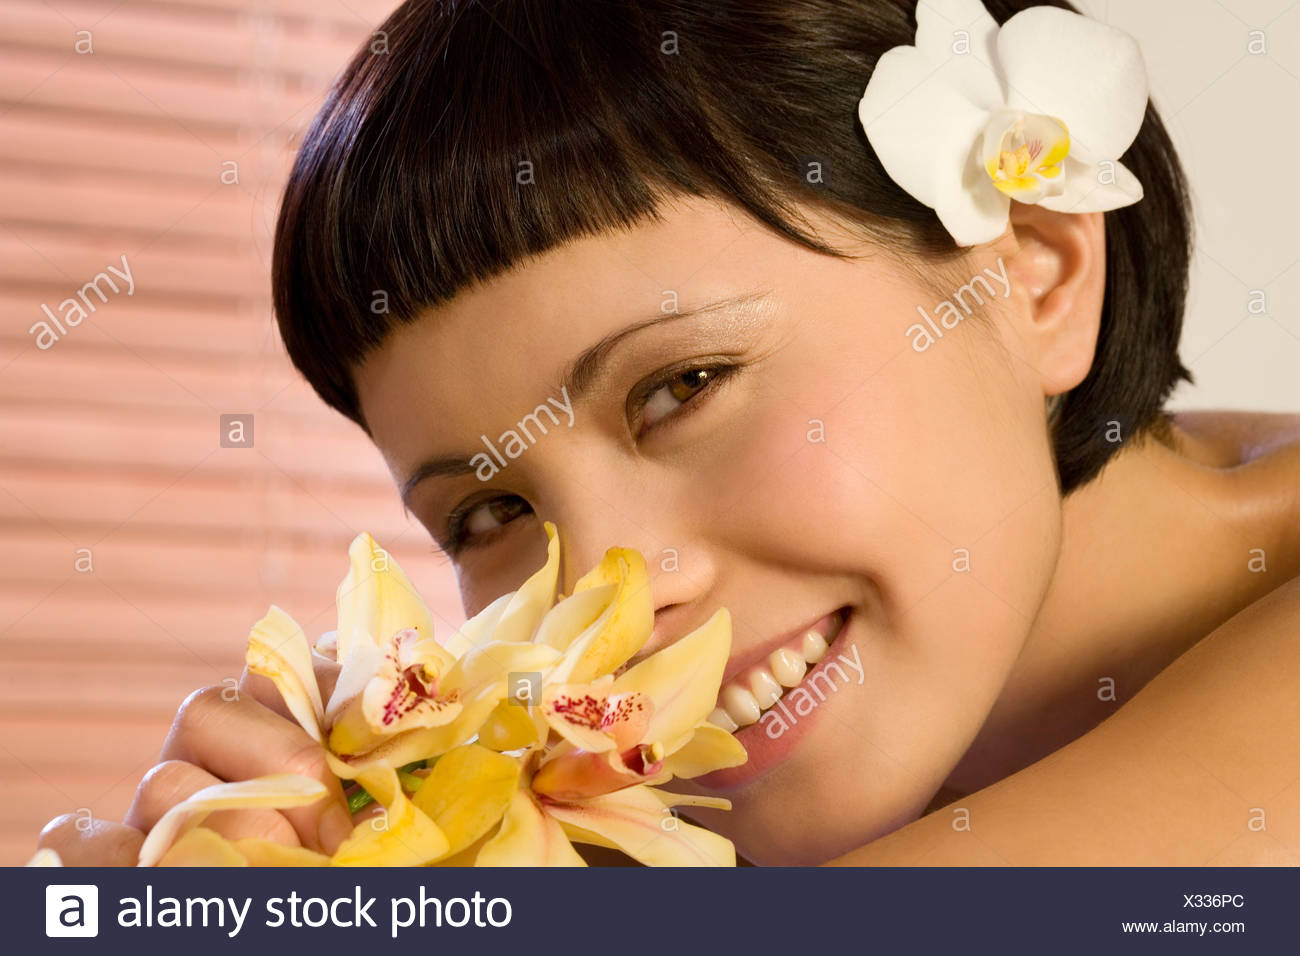 Young woman relaxing in spa, portrait, close-up - Stock Image